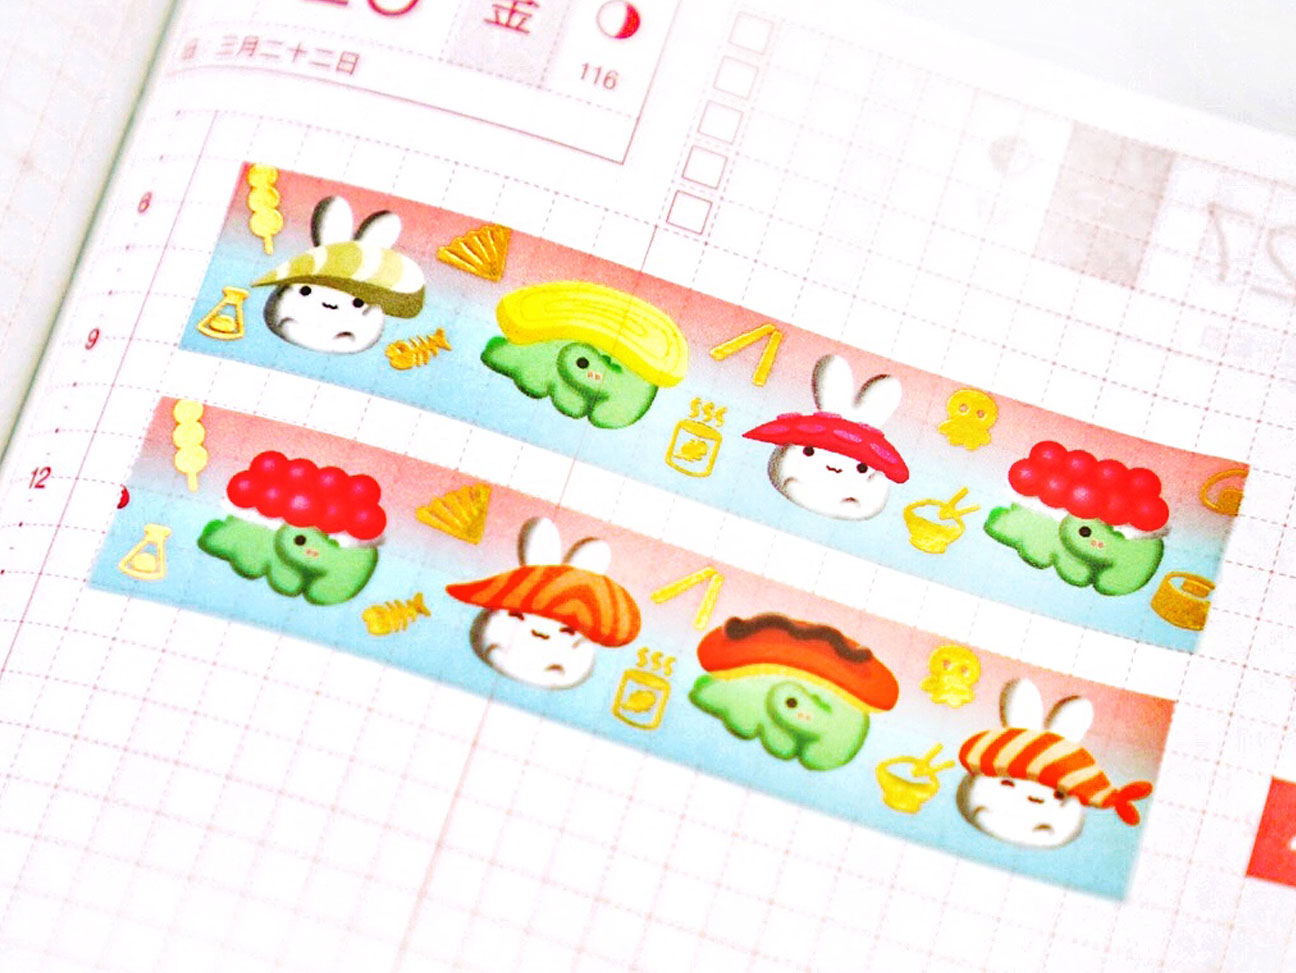 DESIGNER SERIES Nigiri Washi Tape - Gold Foiled (January 11 Release)